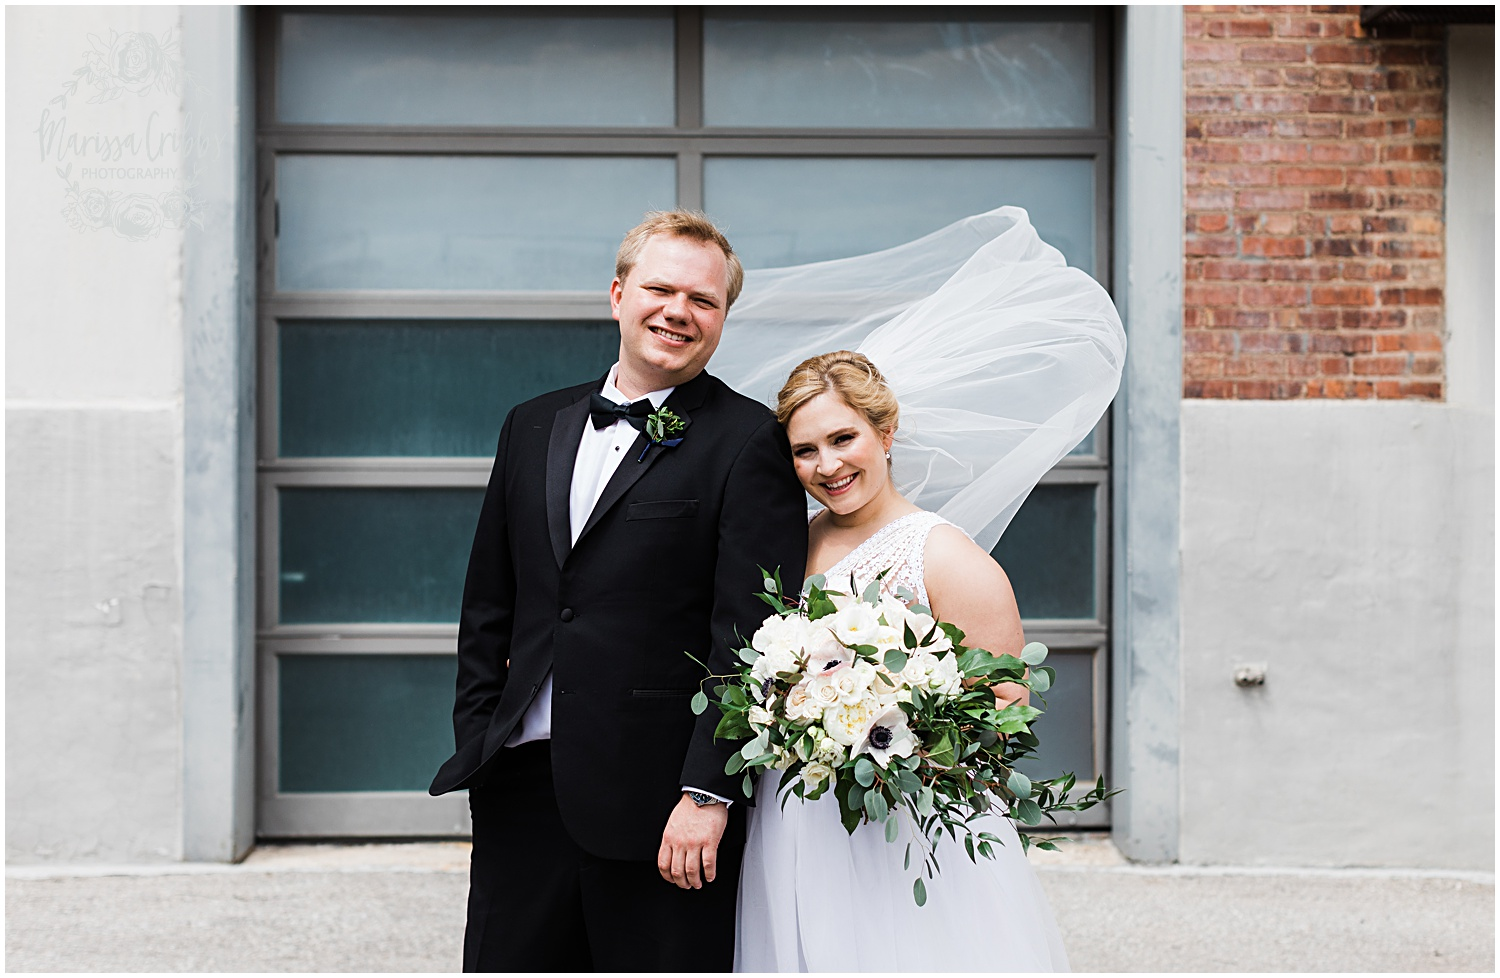 RACHEL & SCOTT MARRIED | MARISSA CRIBBS PHOTOGRAPHY_7673.jpg